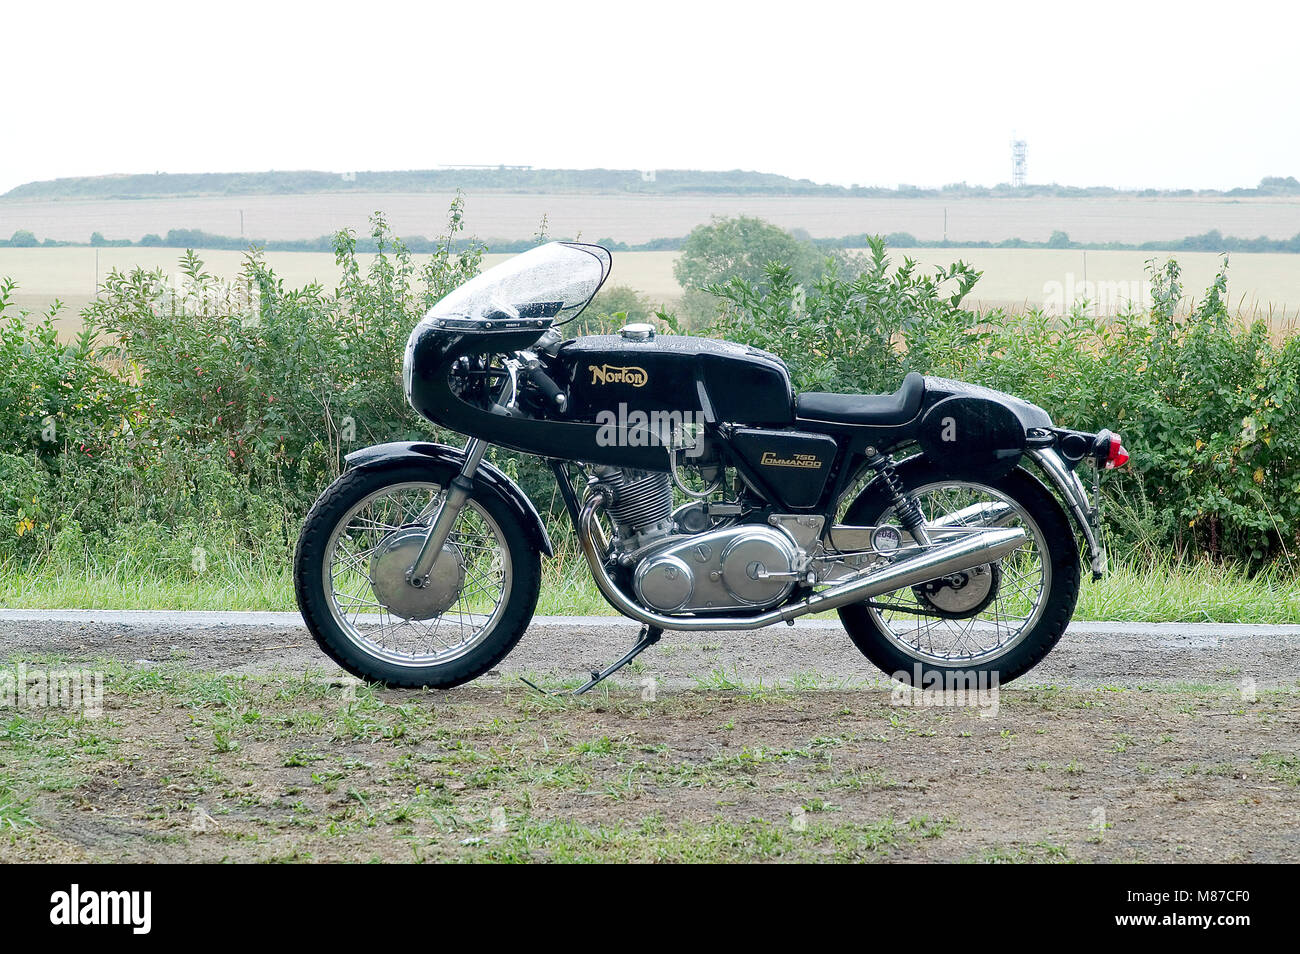 Norton Commando Cafe Racer High Resolution Stock Photography And Images Alamy